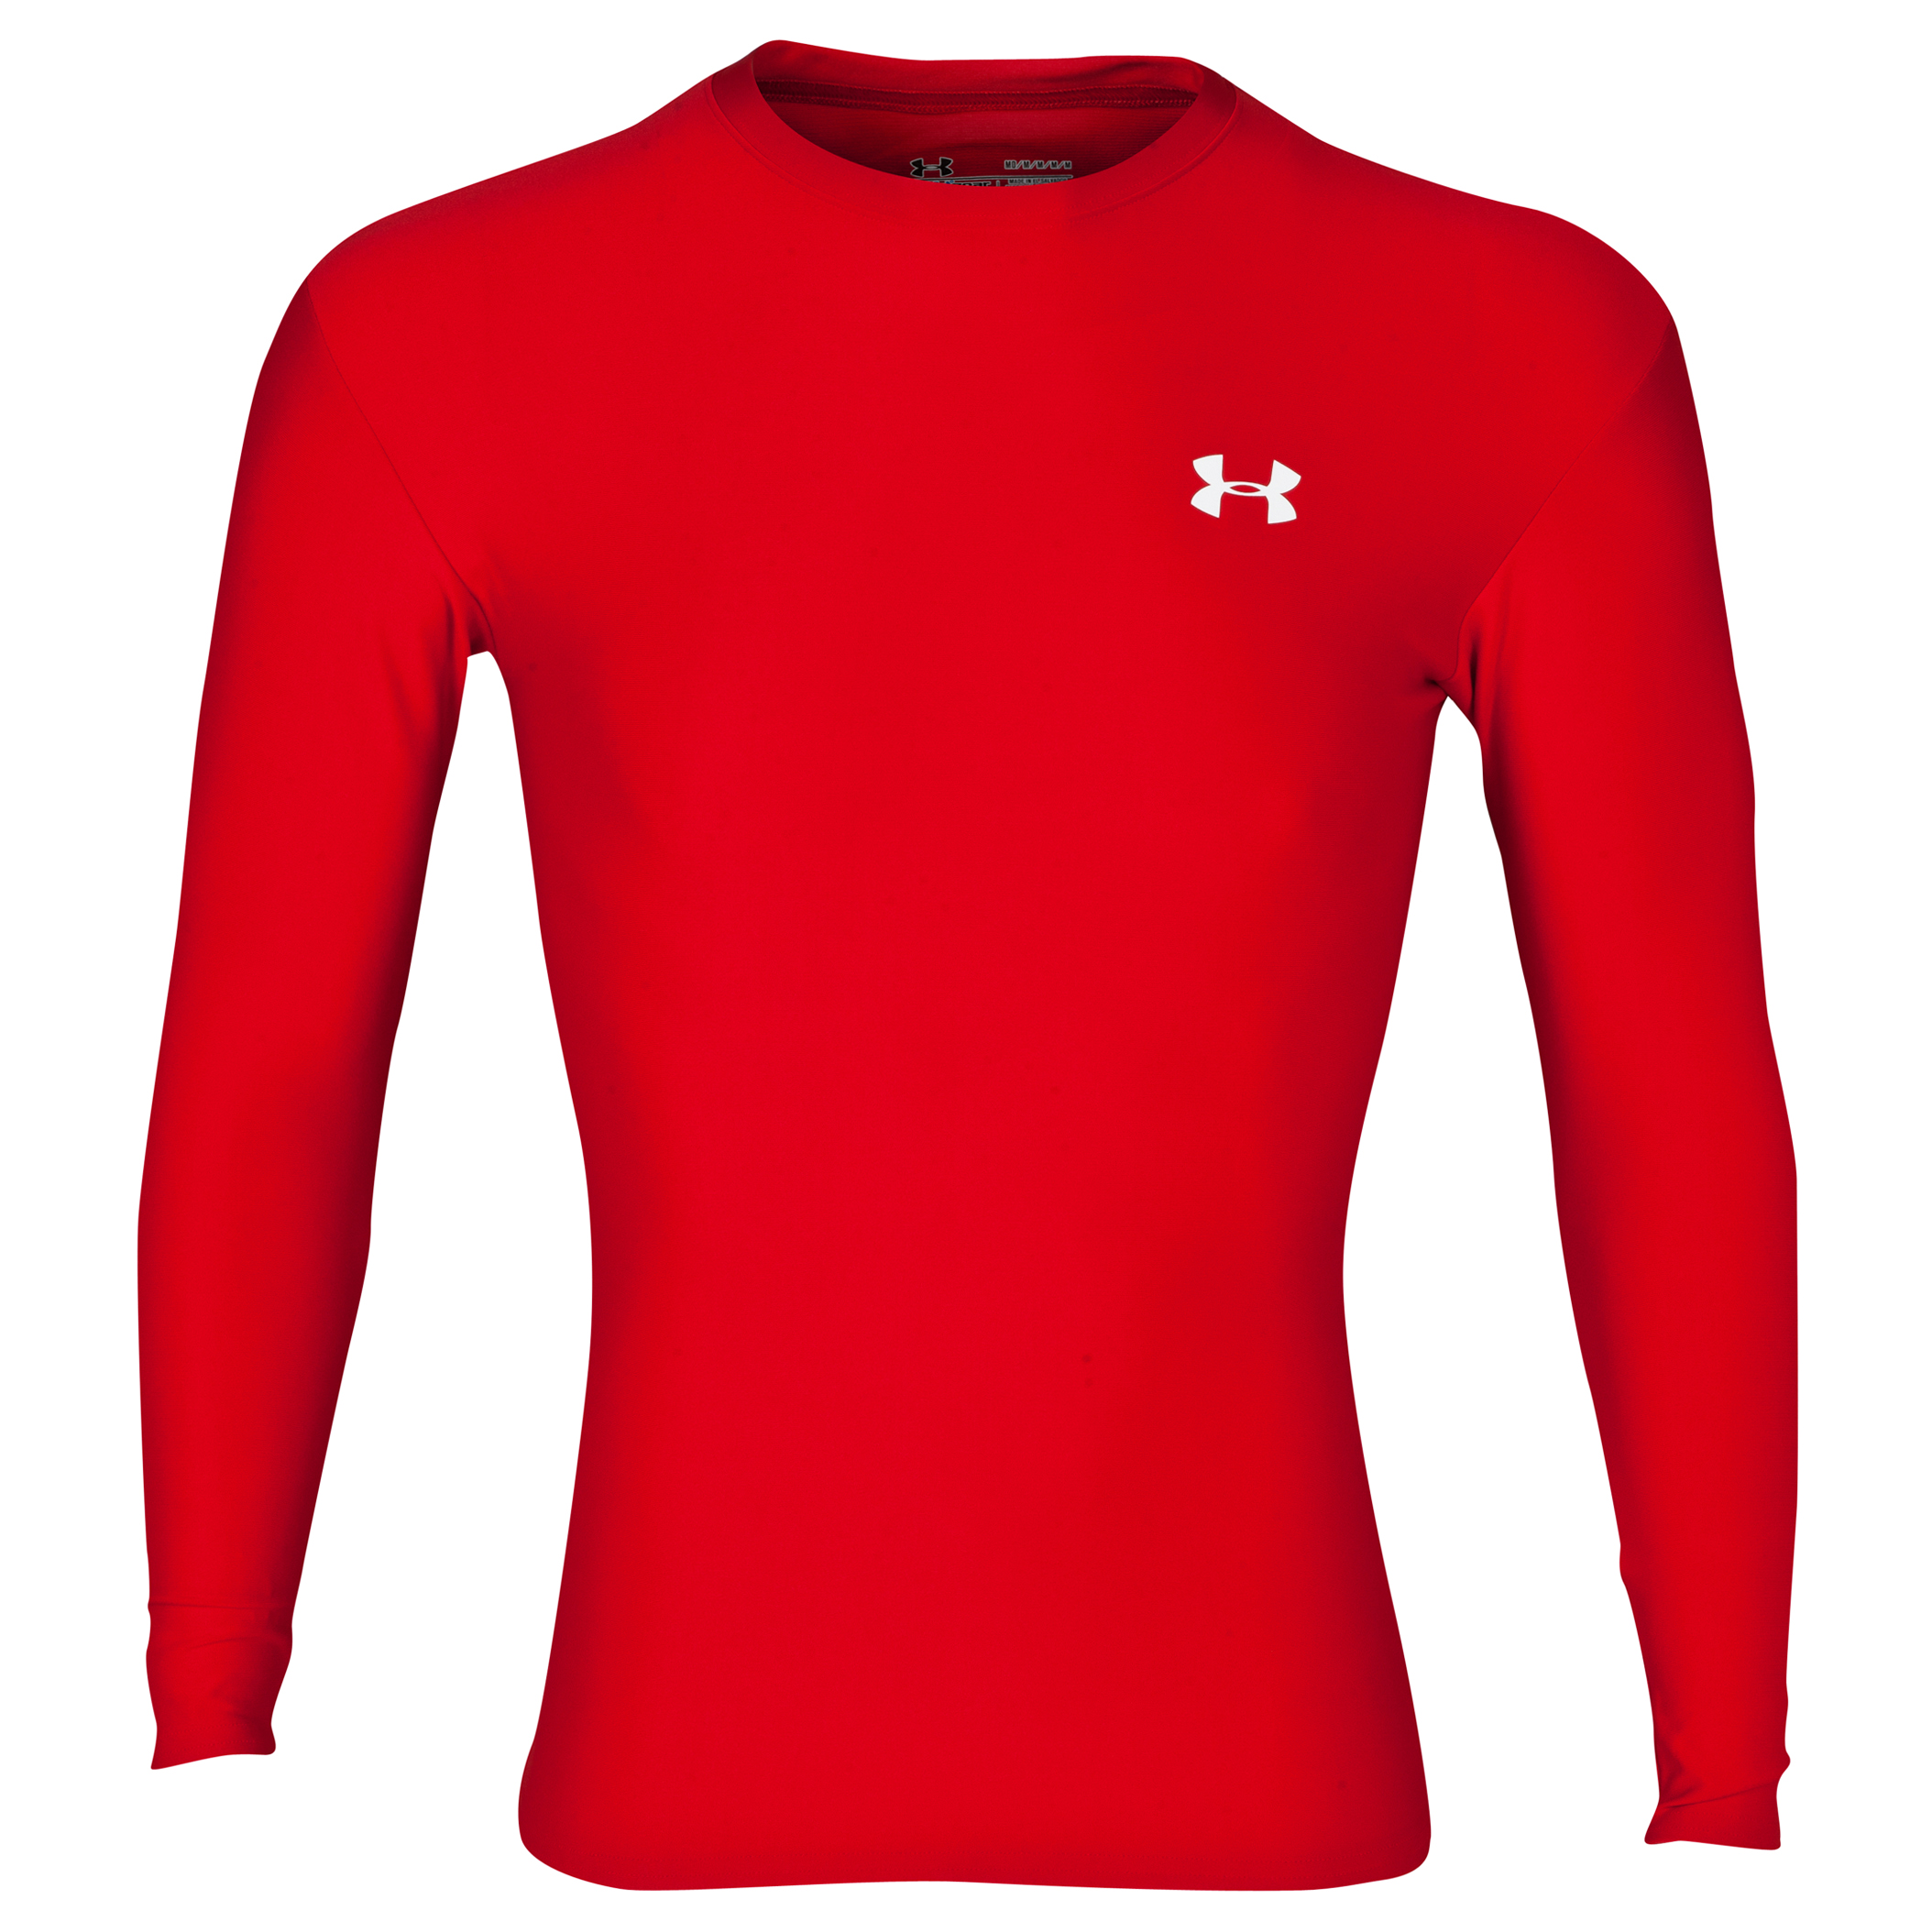 Under Armour Evo Coldgear crew 11 Base Layer Top - Long Sleeve Red